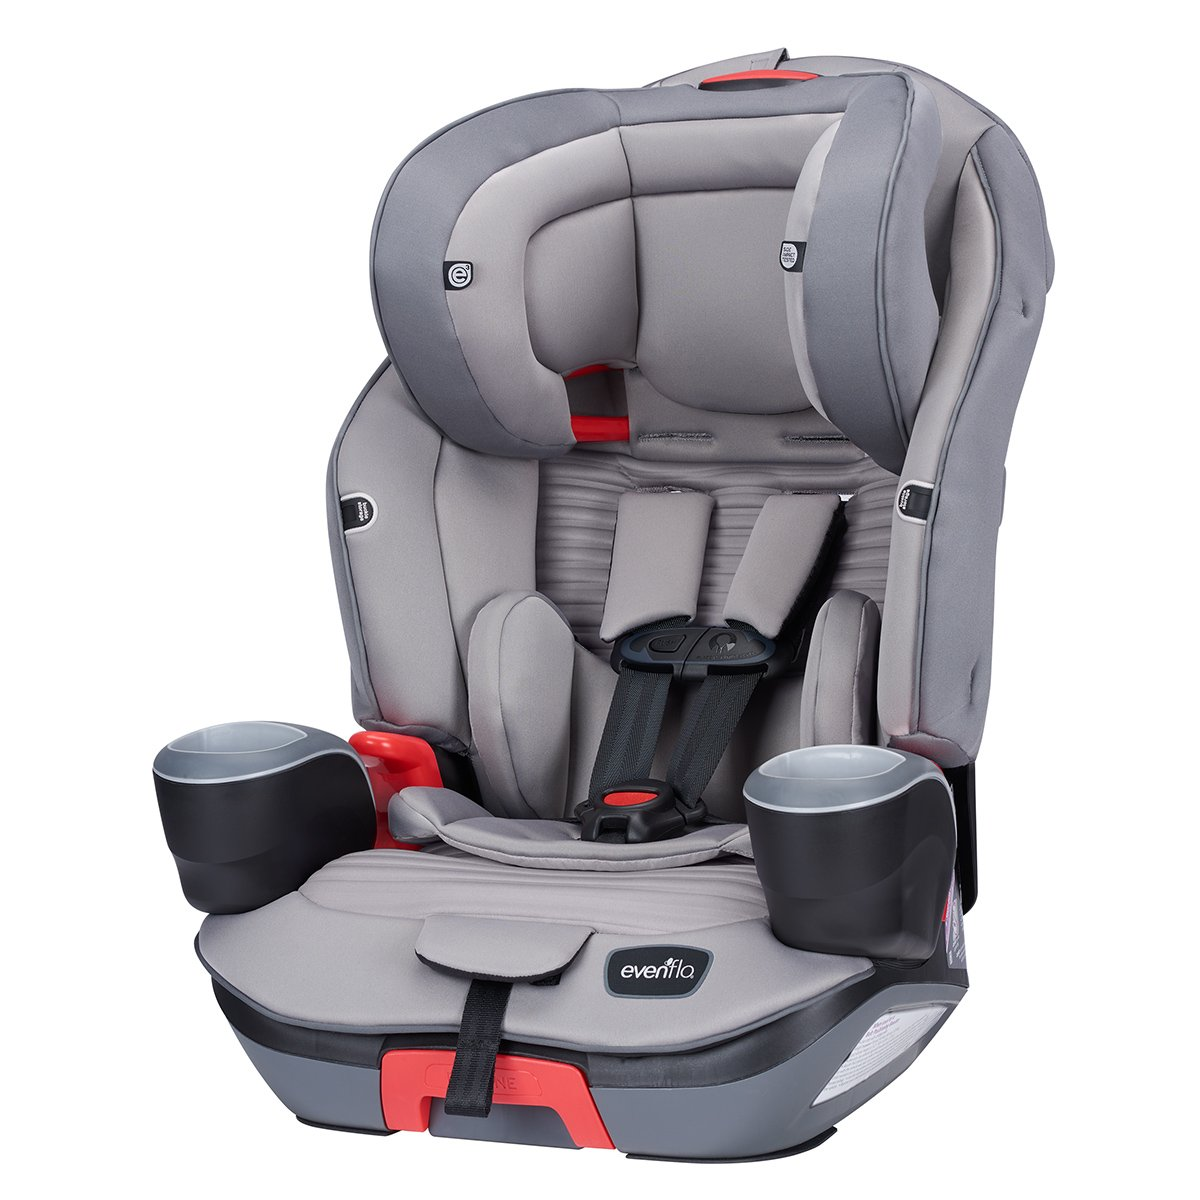 Evenflo Evolve Platinum 3 In 1 Combination Booster Seat Charcoal Stripe